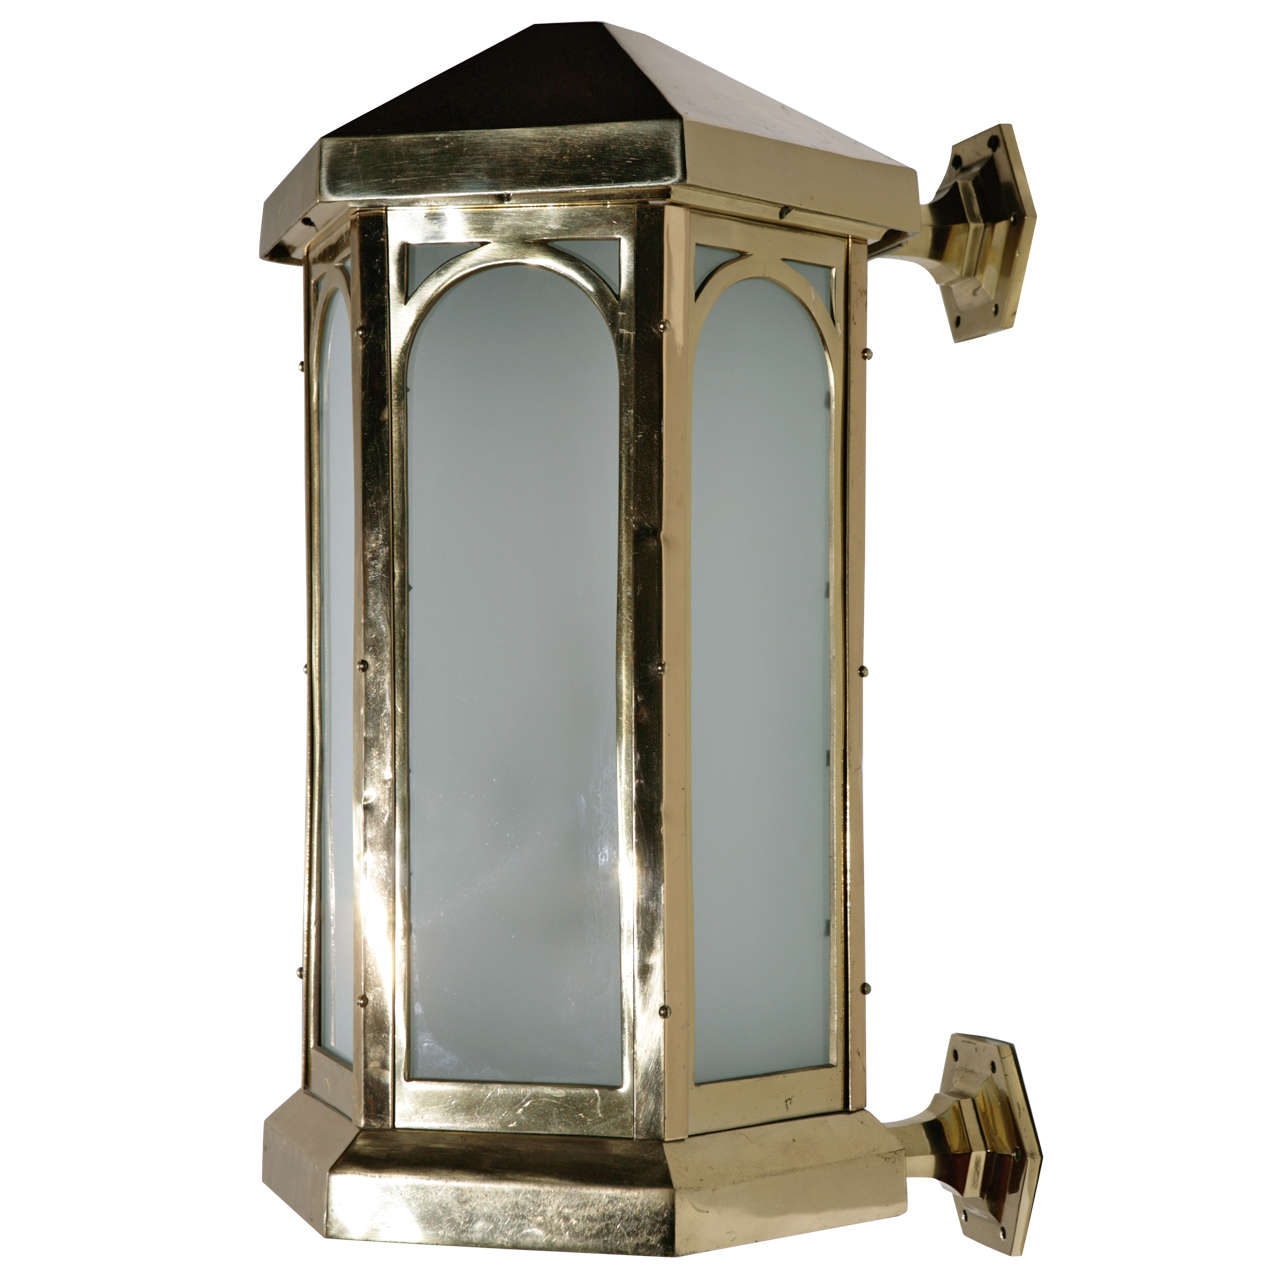 Brass Exterior Wall Sconces : Cast Brass Exterior Sconce For Sale at 1stdibs